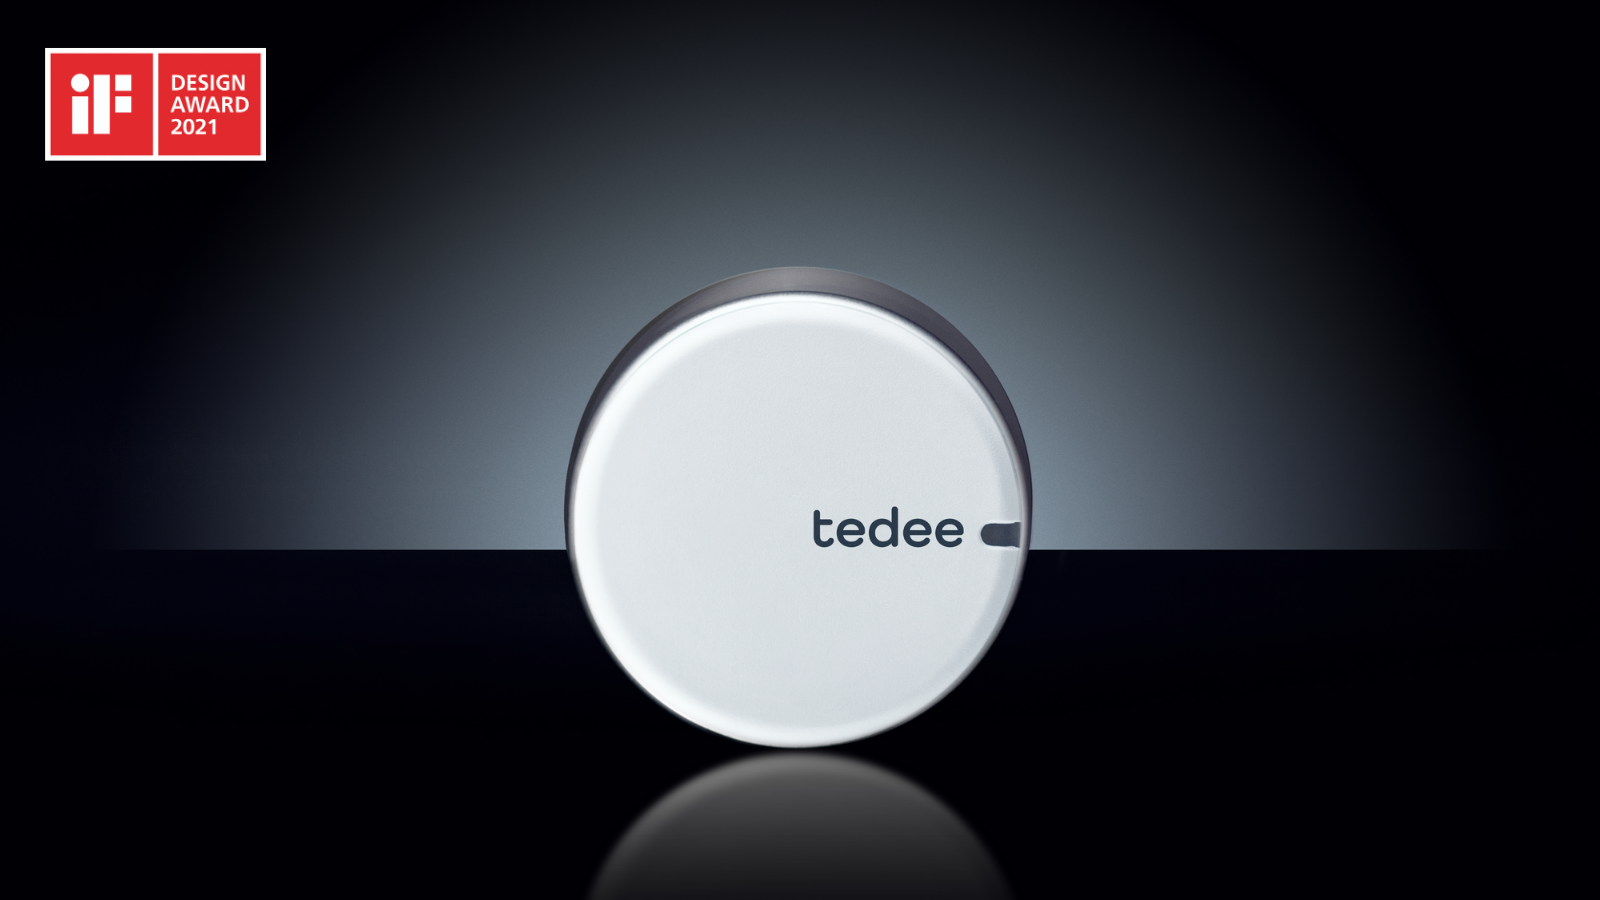 tedee_IF-Design-Award-2021_2